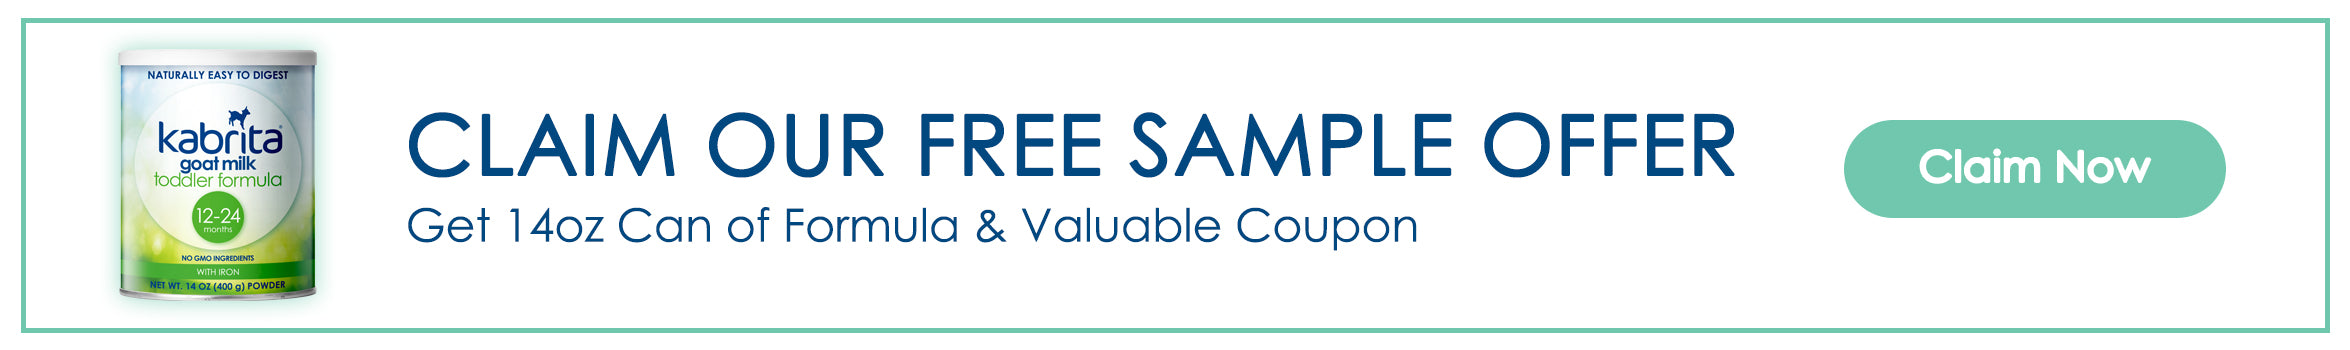 Claim Our Free Sample Offer. Get 14oz Can of Formula and valuable Coupon